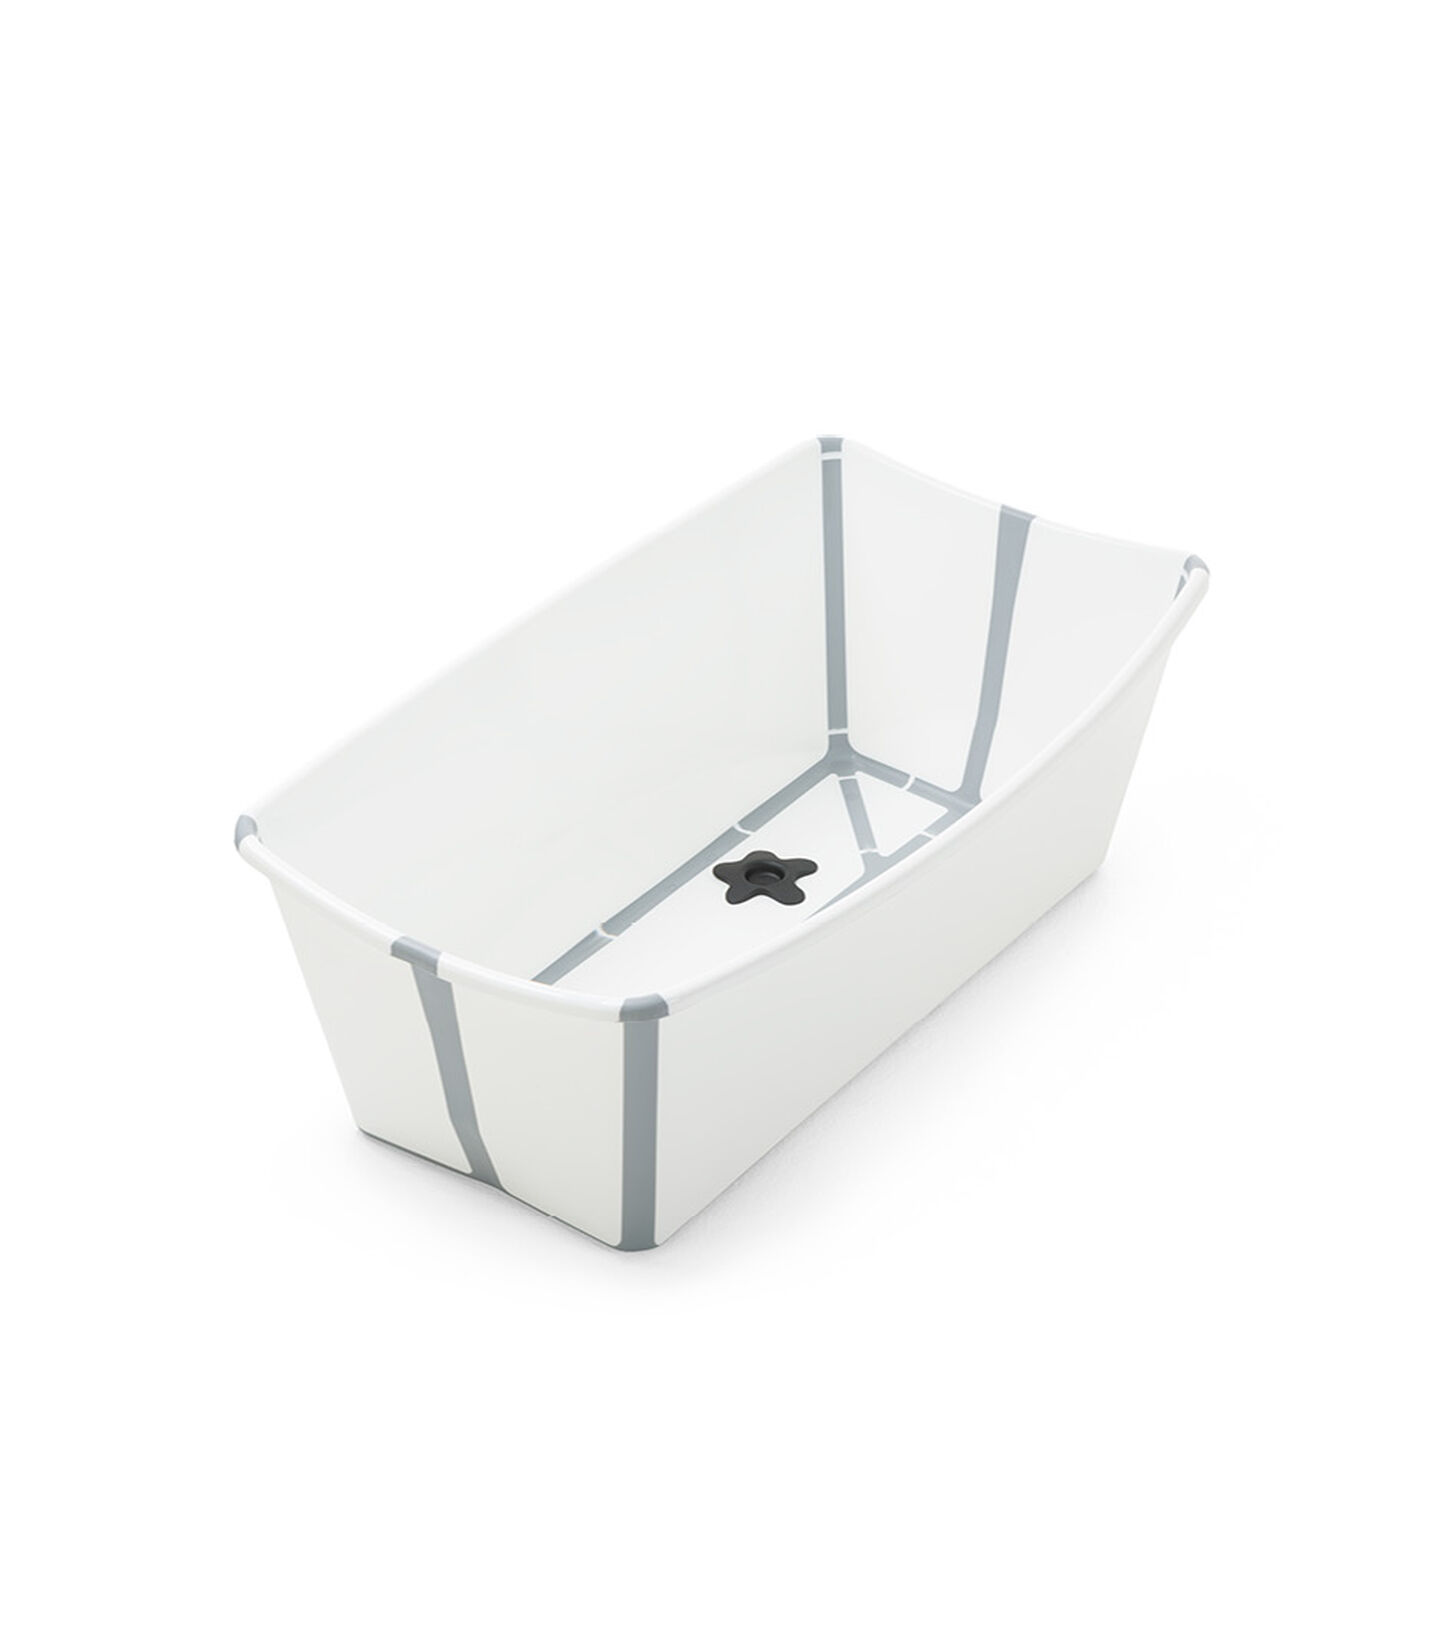 Stokke® Flexi Bath® Heat White, White, mainview view 2